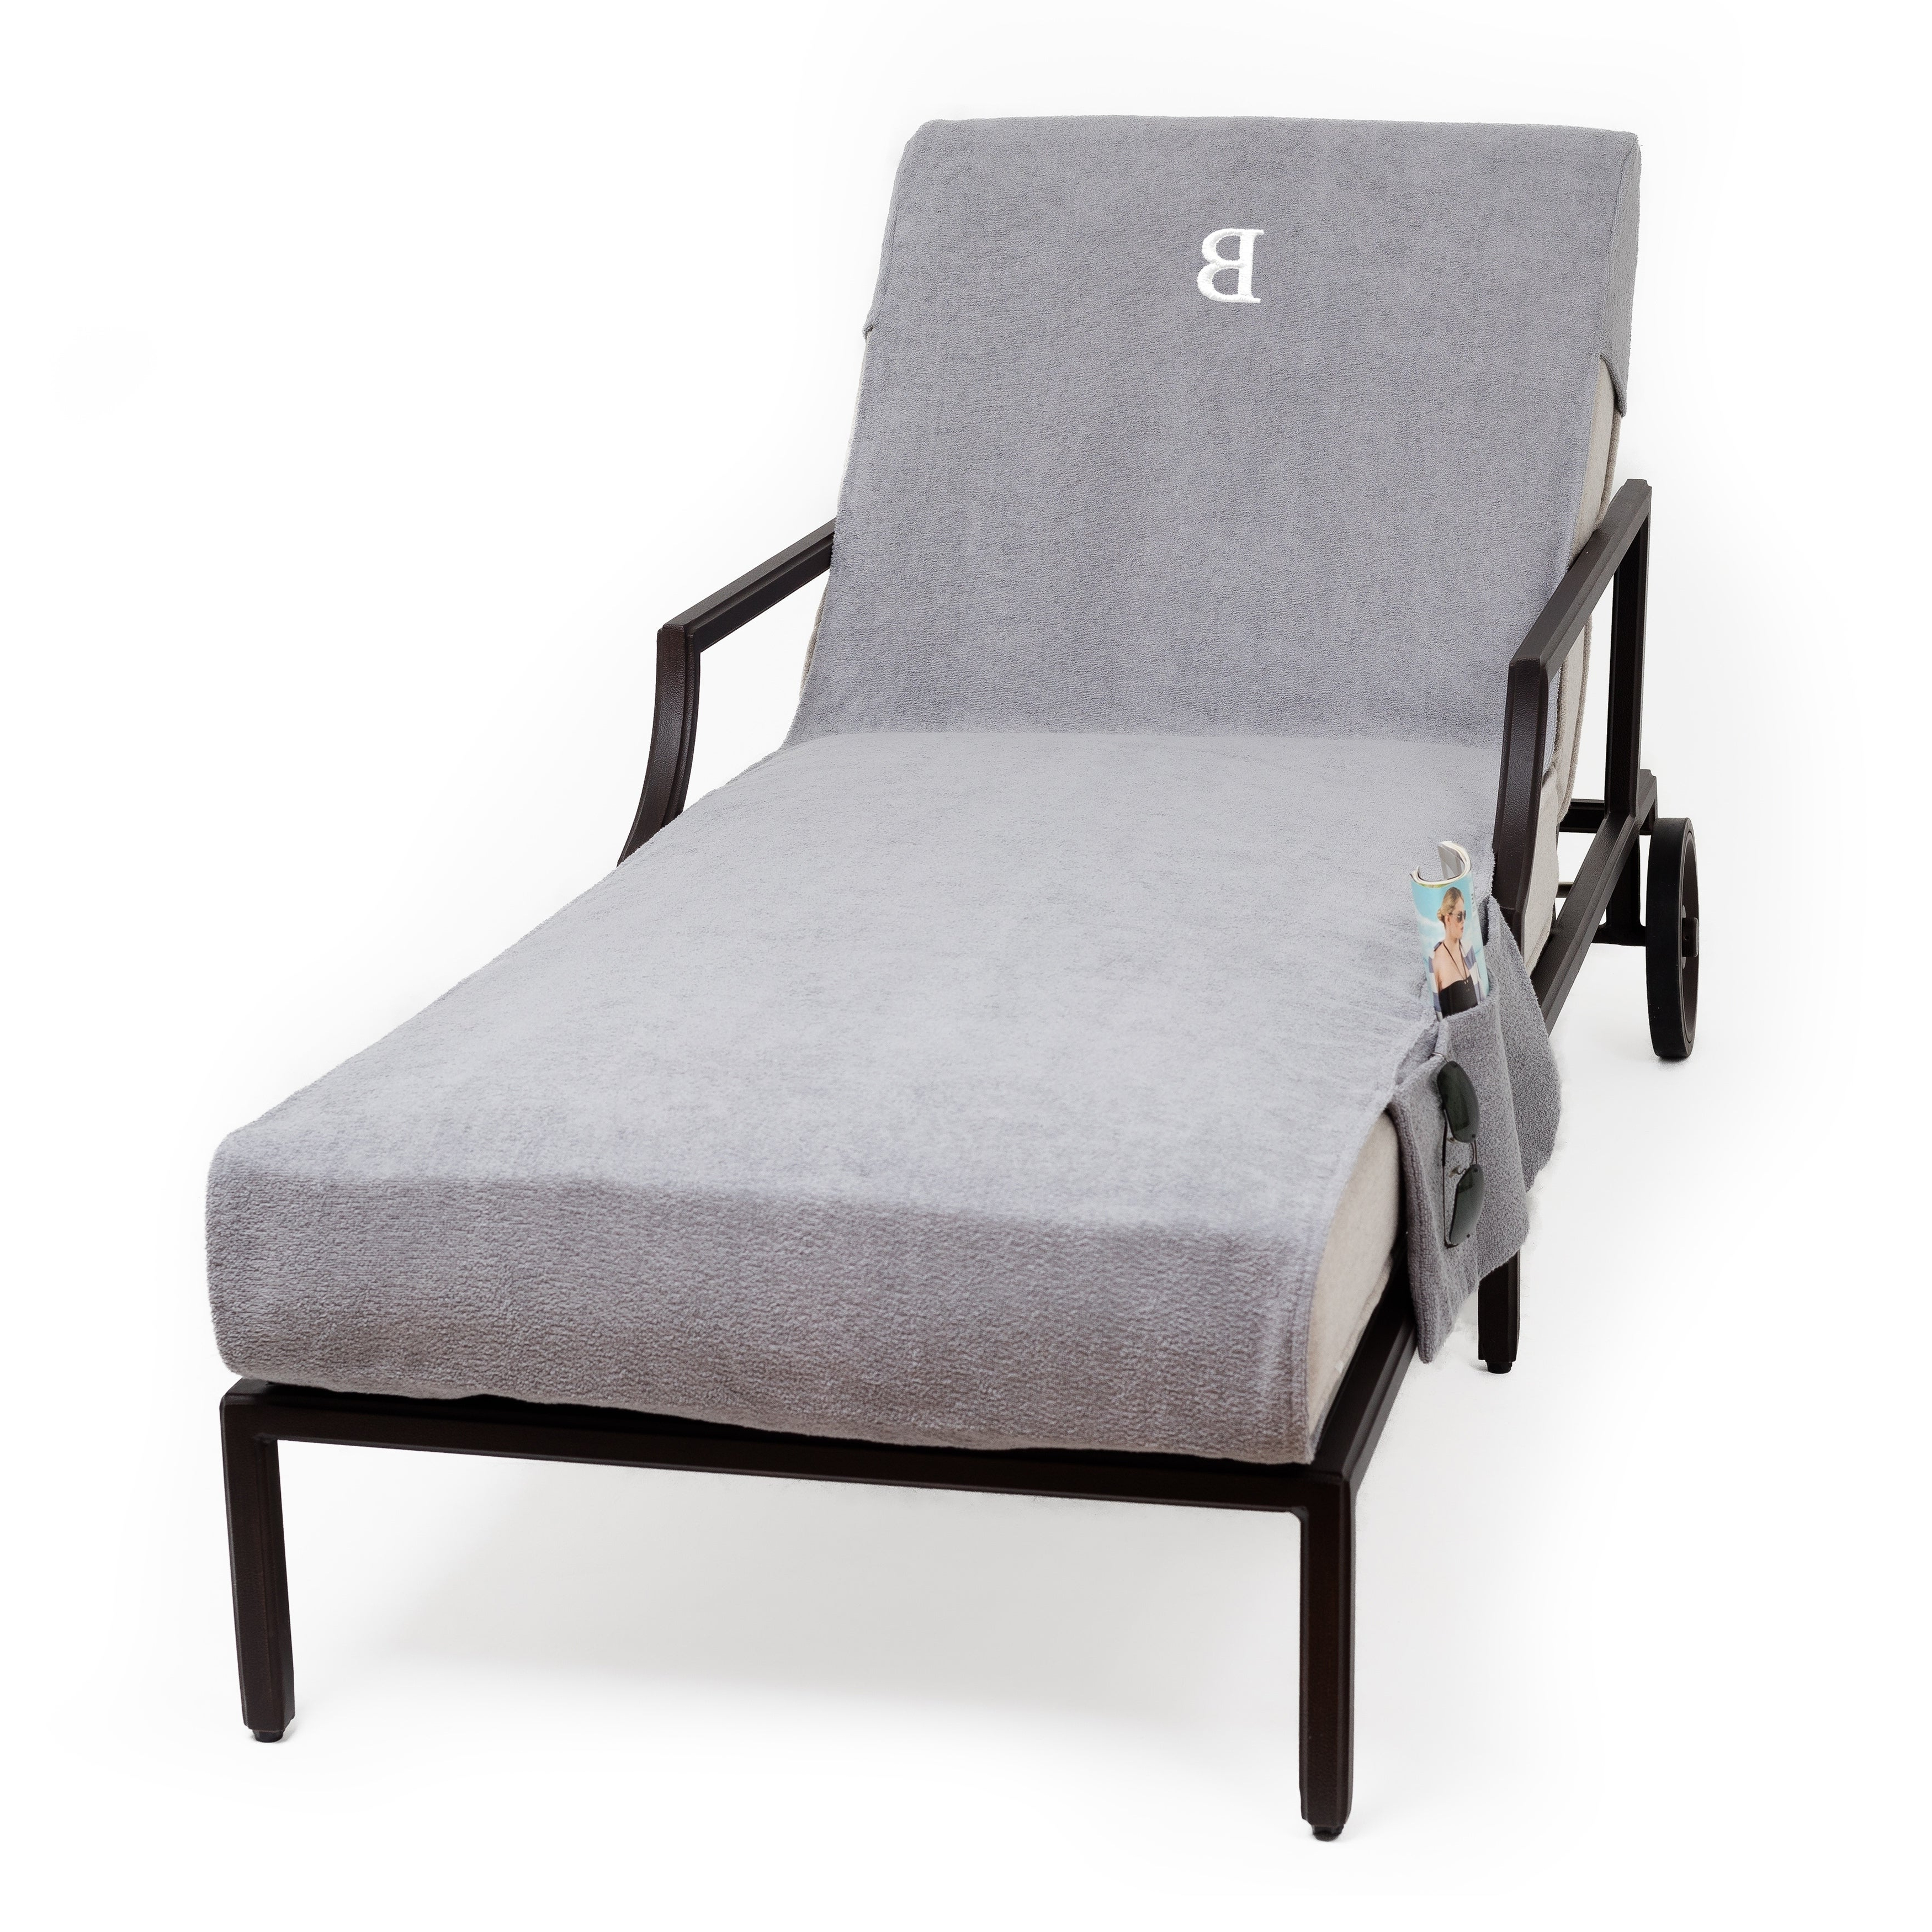 Standard Size Chaise Lounge Chairs Pertaining To Fashionable Authentic Turkish Cotton Monogrammed Grey Towel Cover With Pocket For Standard Size Chaise Lounge Chair (View 4 of 25)